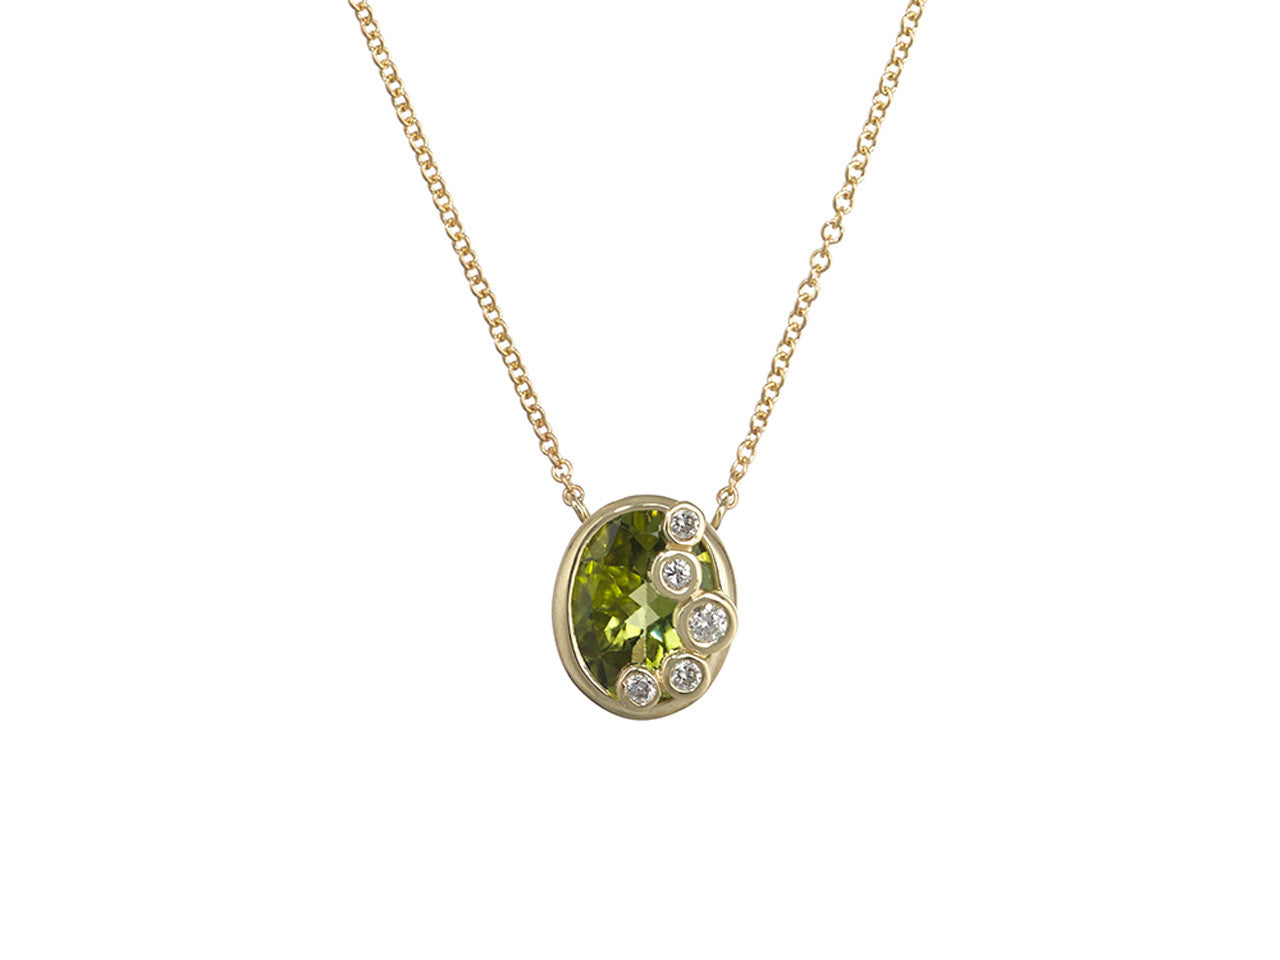 yellow necklace picture peridot pendant classic of stone gold single oval